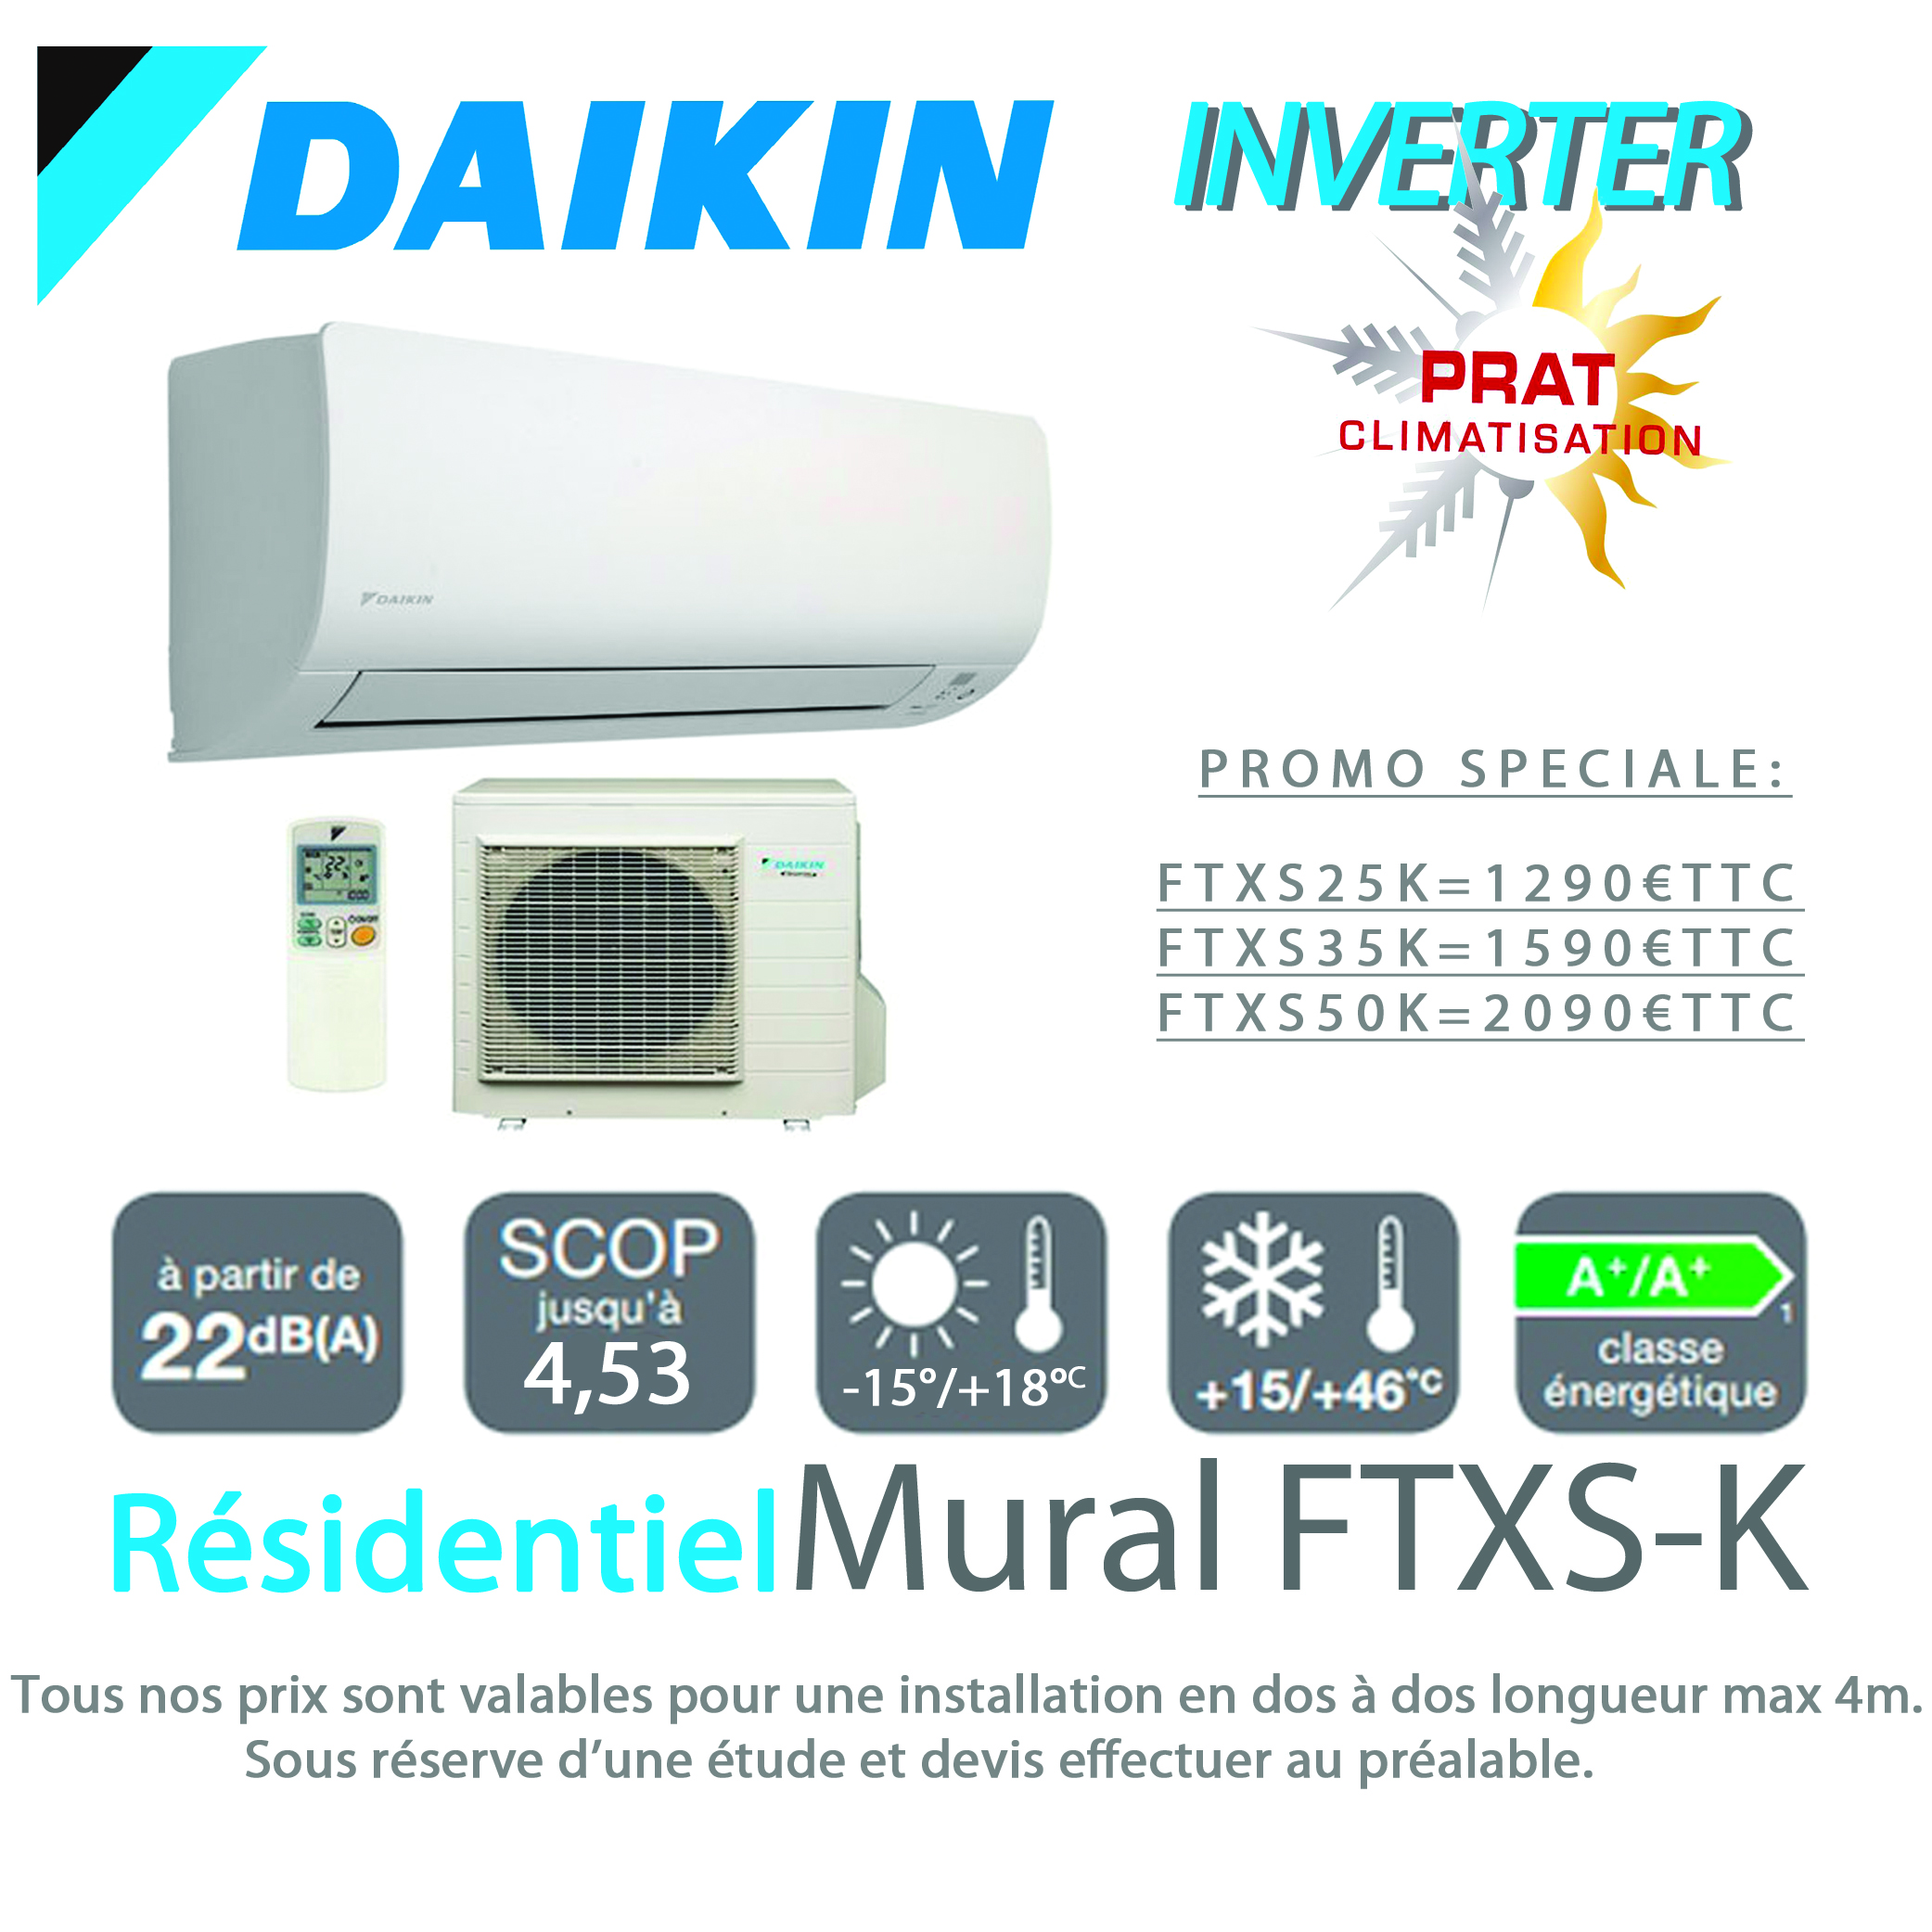 promo climatisation daikin ftxs k rxs k par prat climatisation. Black Bedroom Furniture Sets. Home Design Ideas